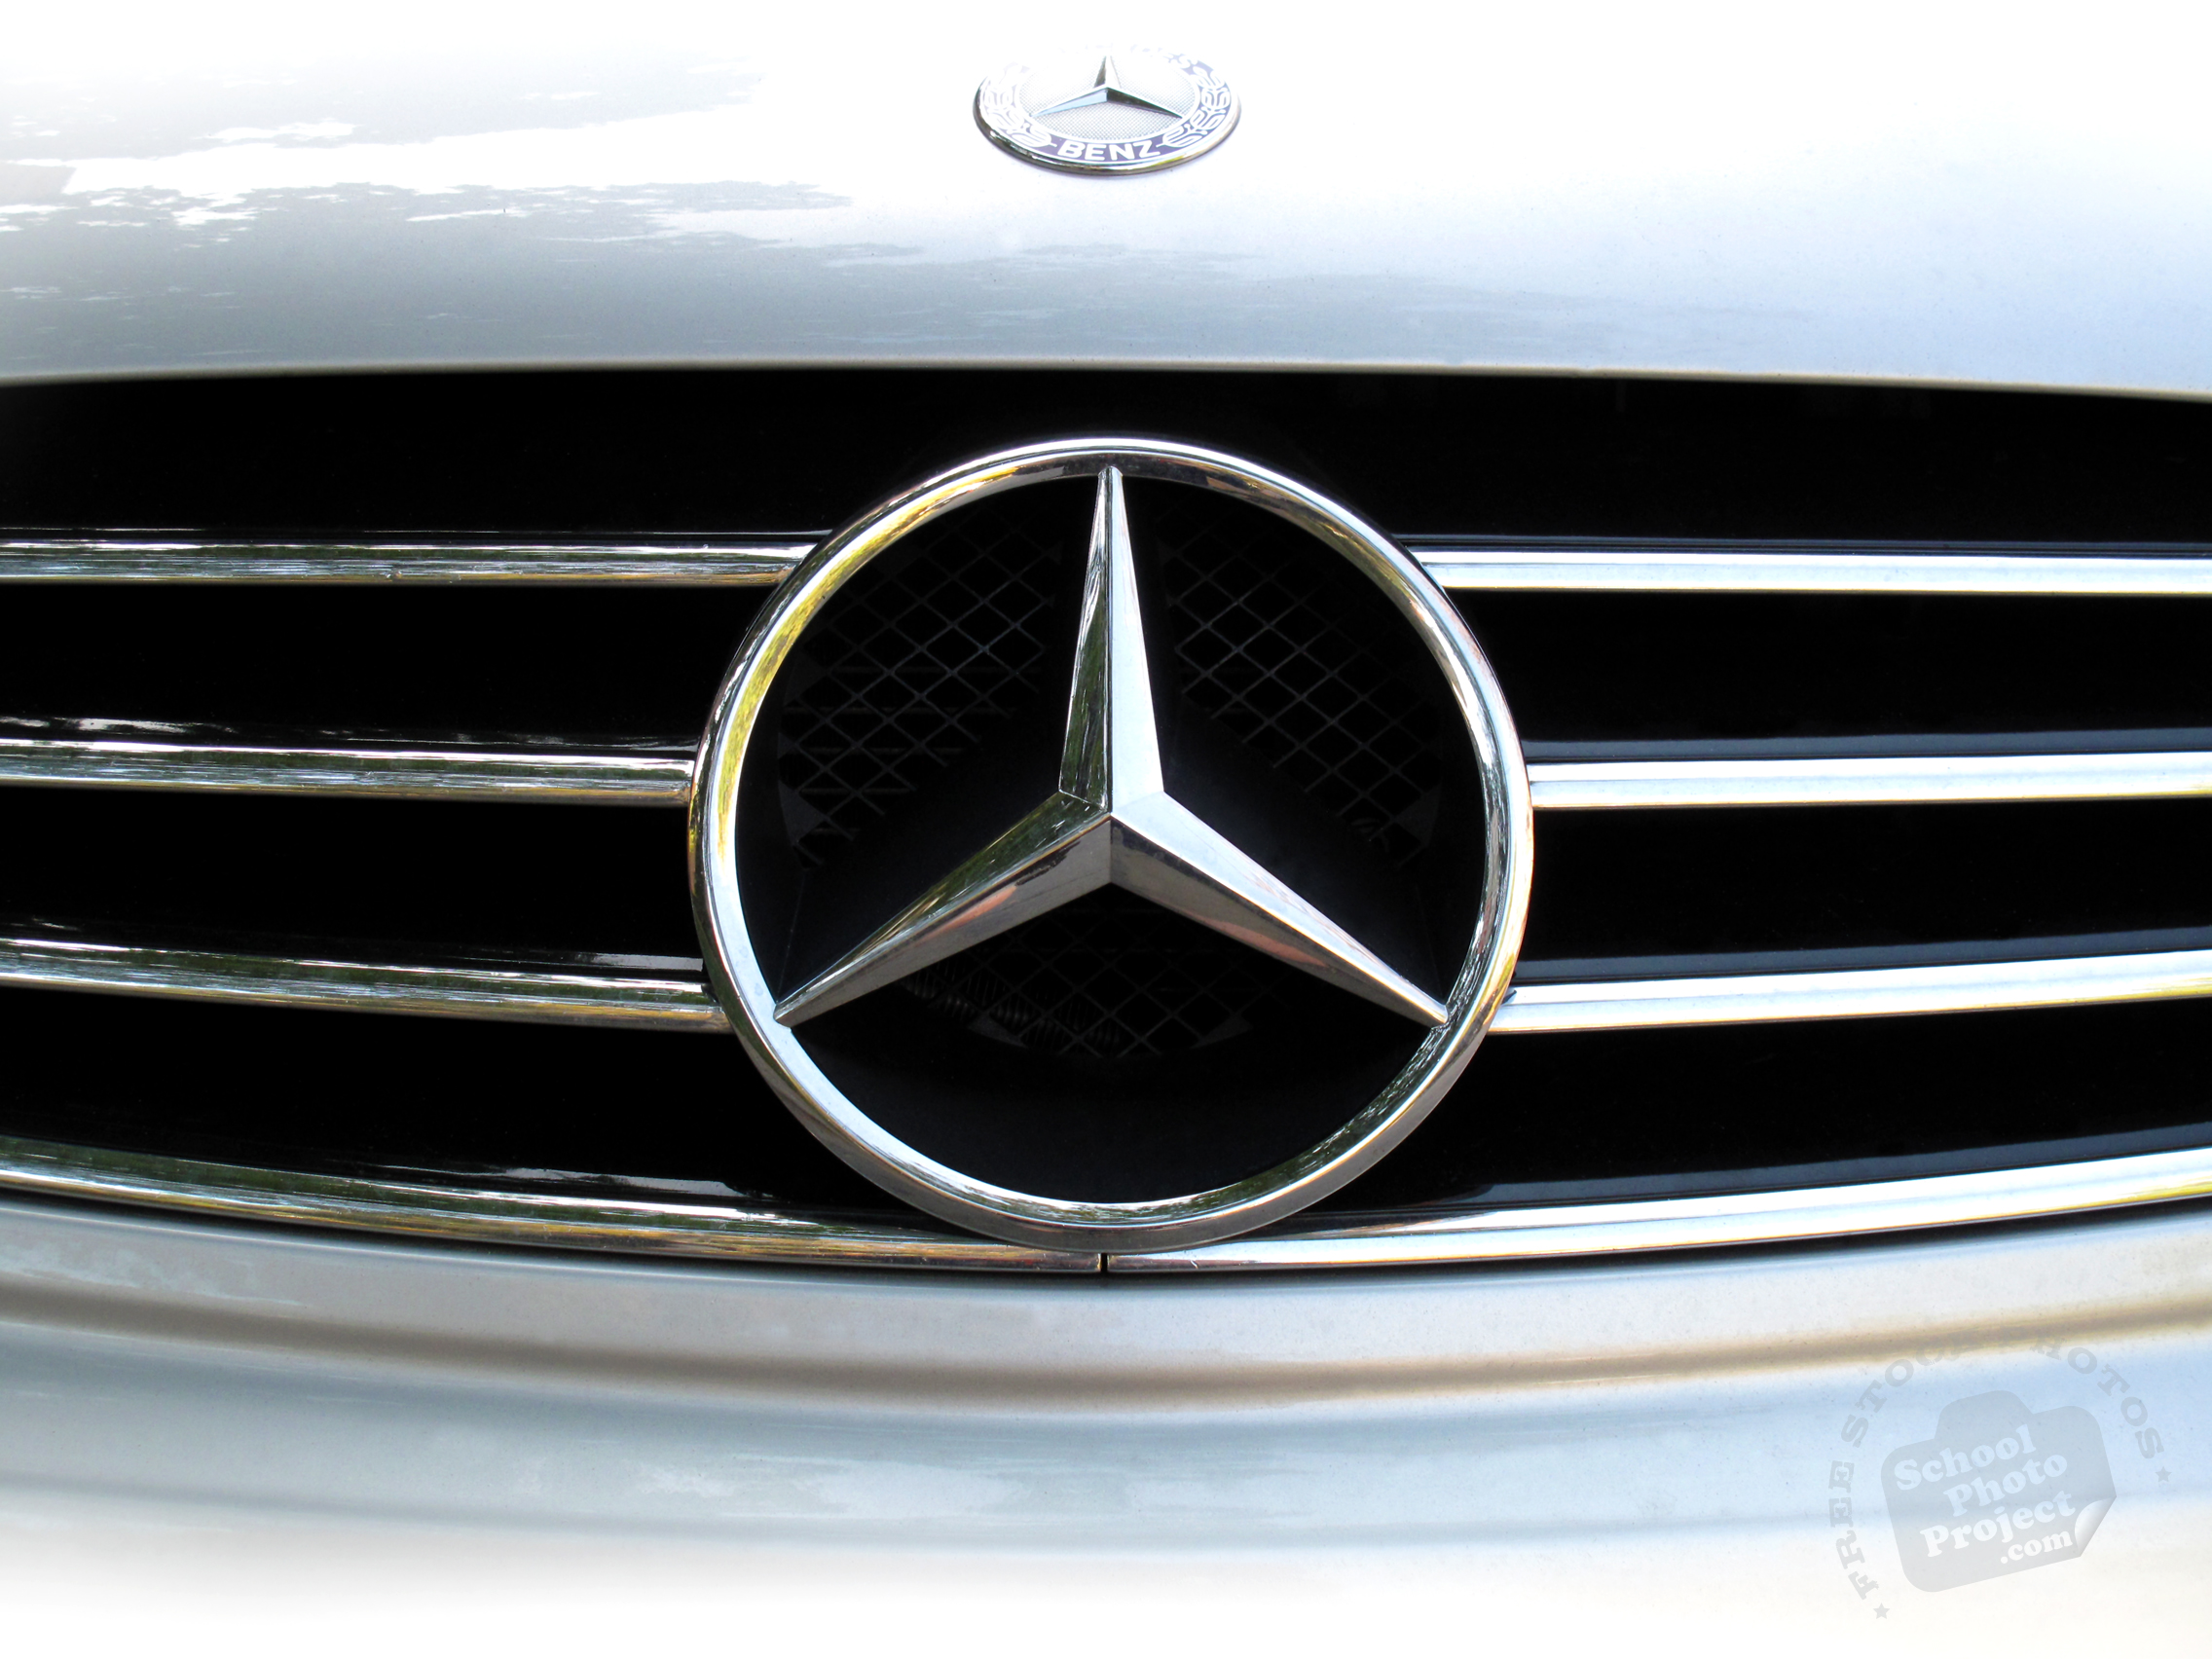 Mercedes benz logo free stock photo image picture mercedes mercedes benz logo mercedes benz brand car logo auto automobile voltagebd Image collections